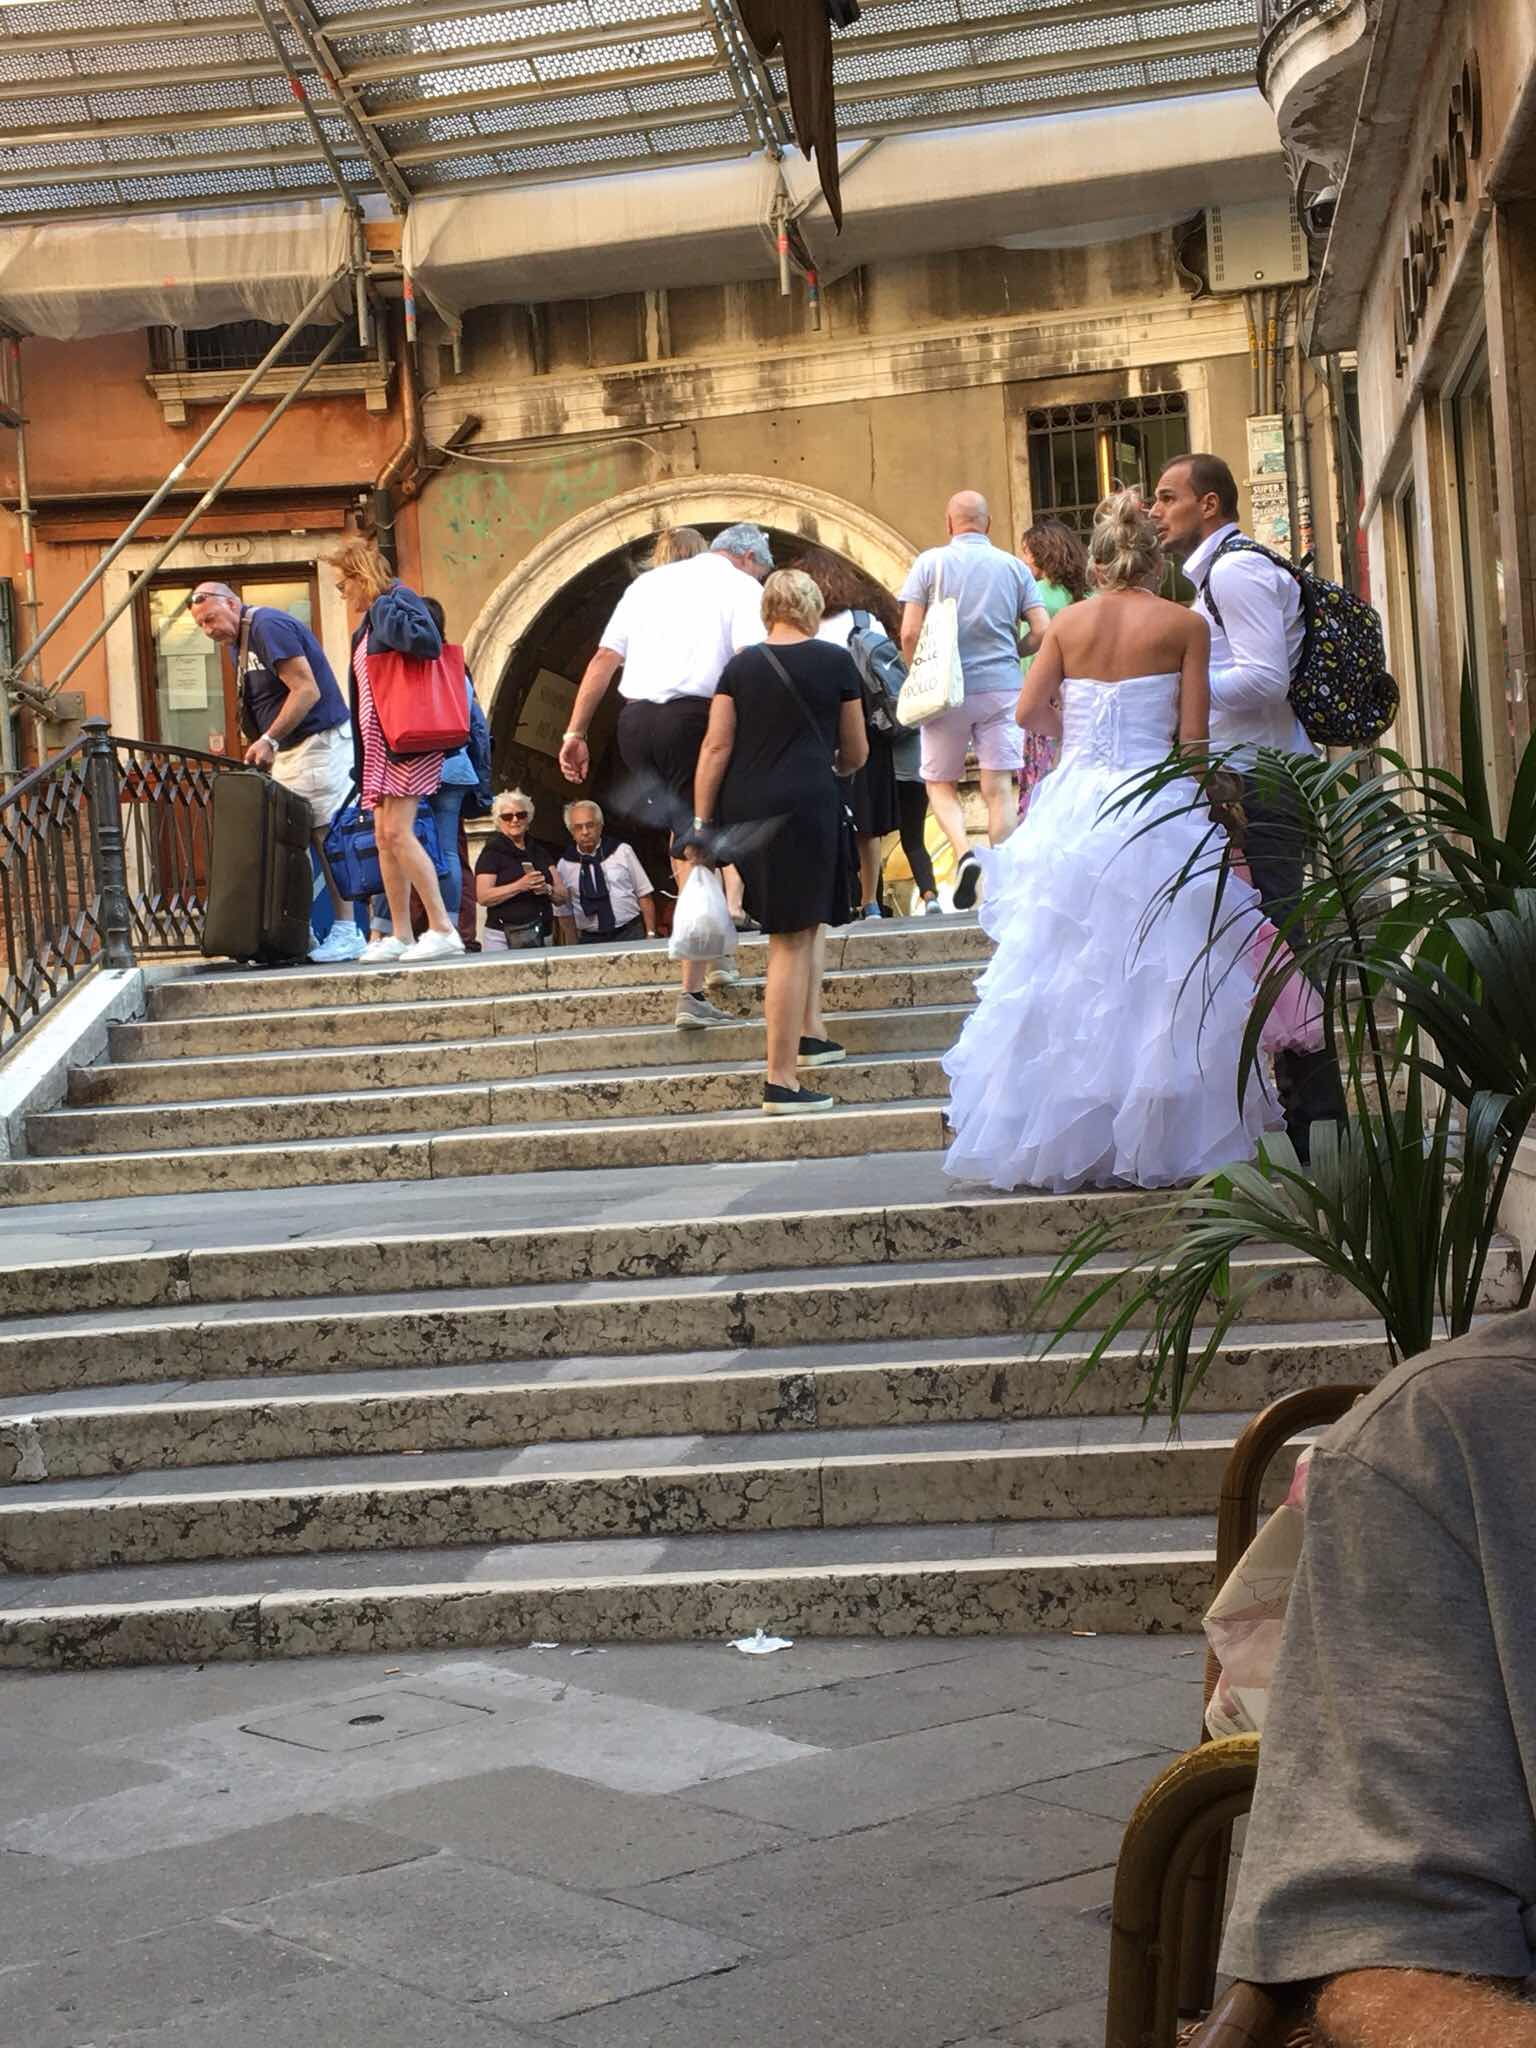 Bride and groom consulting their map in Venice.